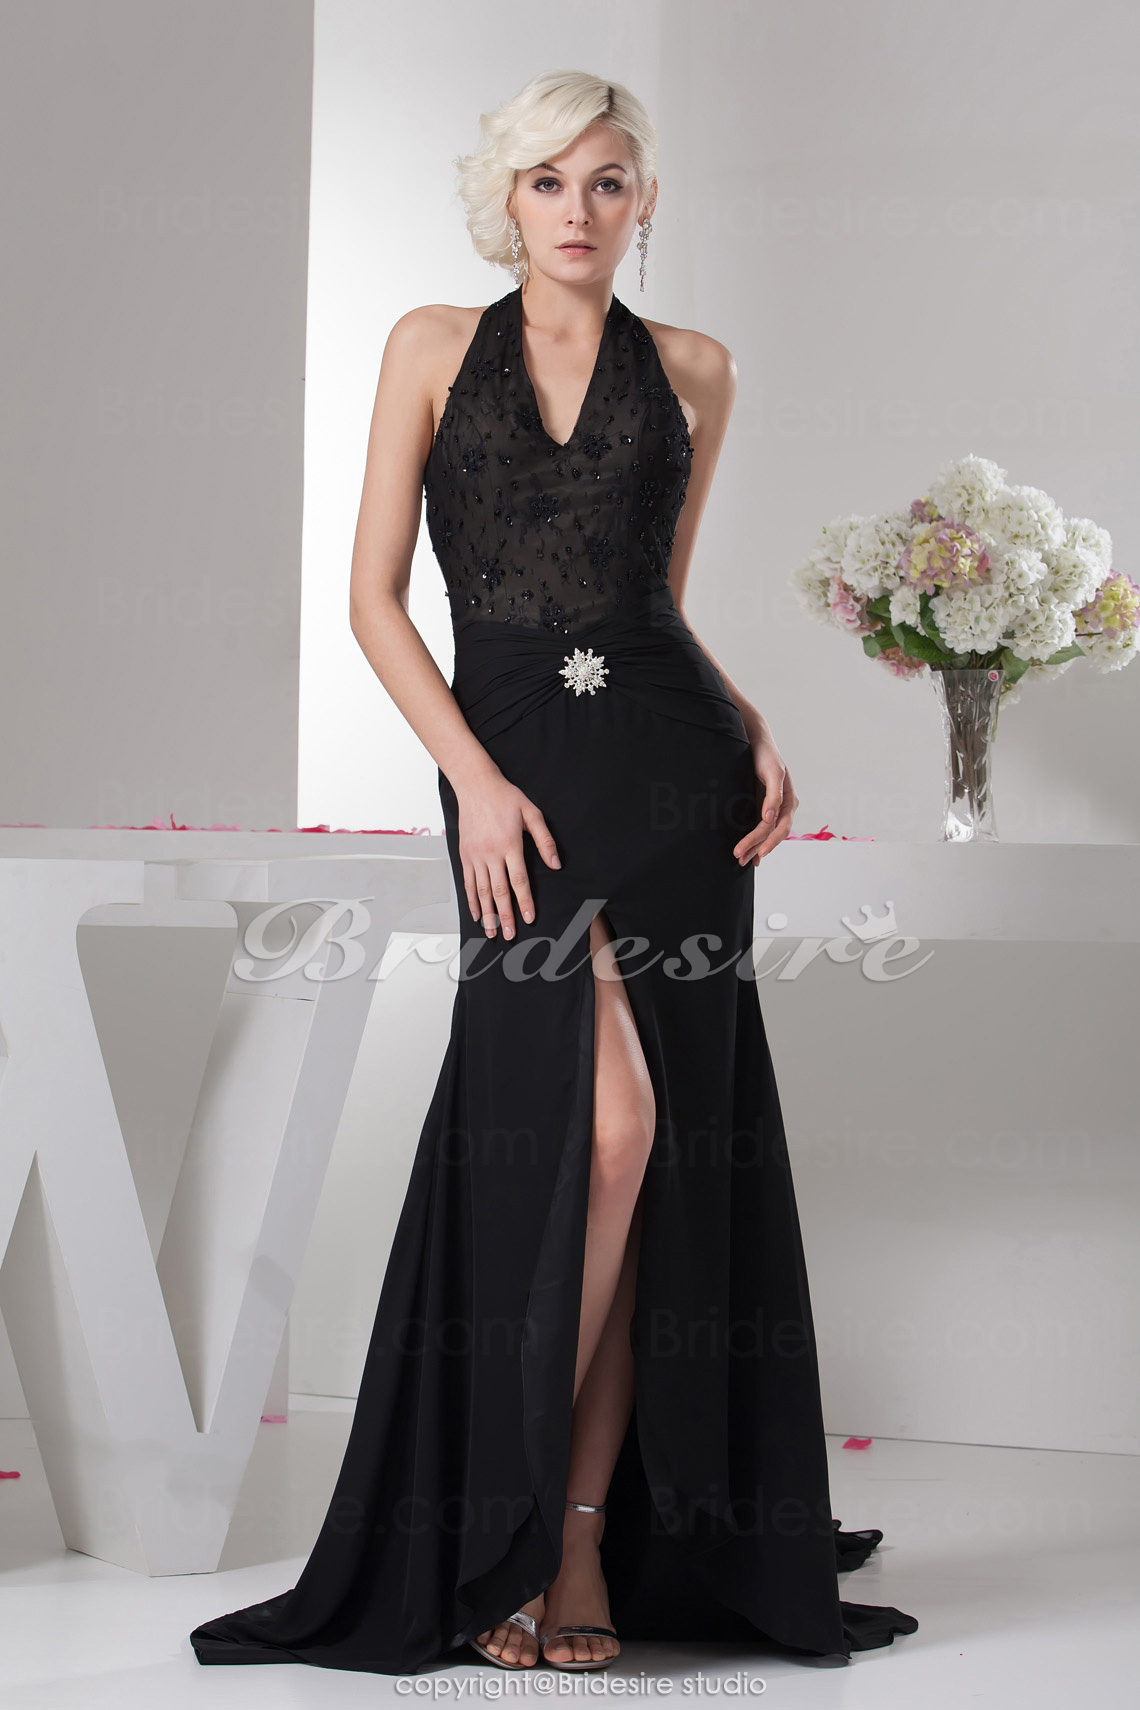 Trumpet/Mermaid Halter Floor-length Sweep Train Sleeveless Chiffon Dress